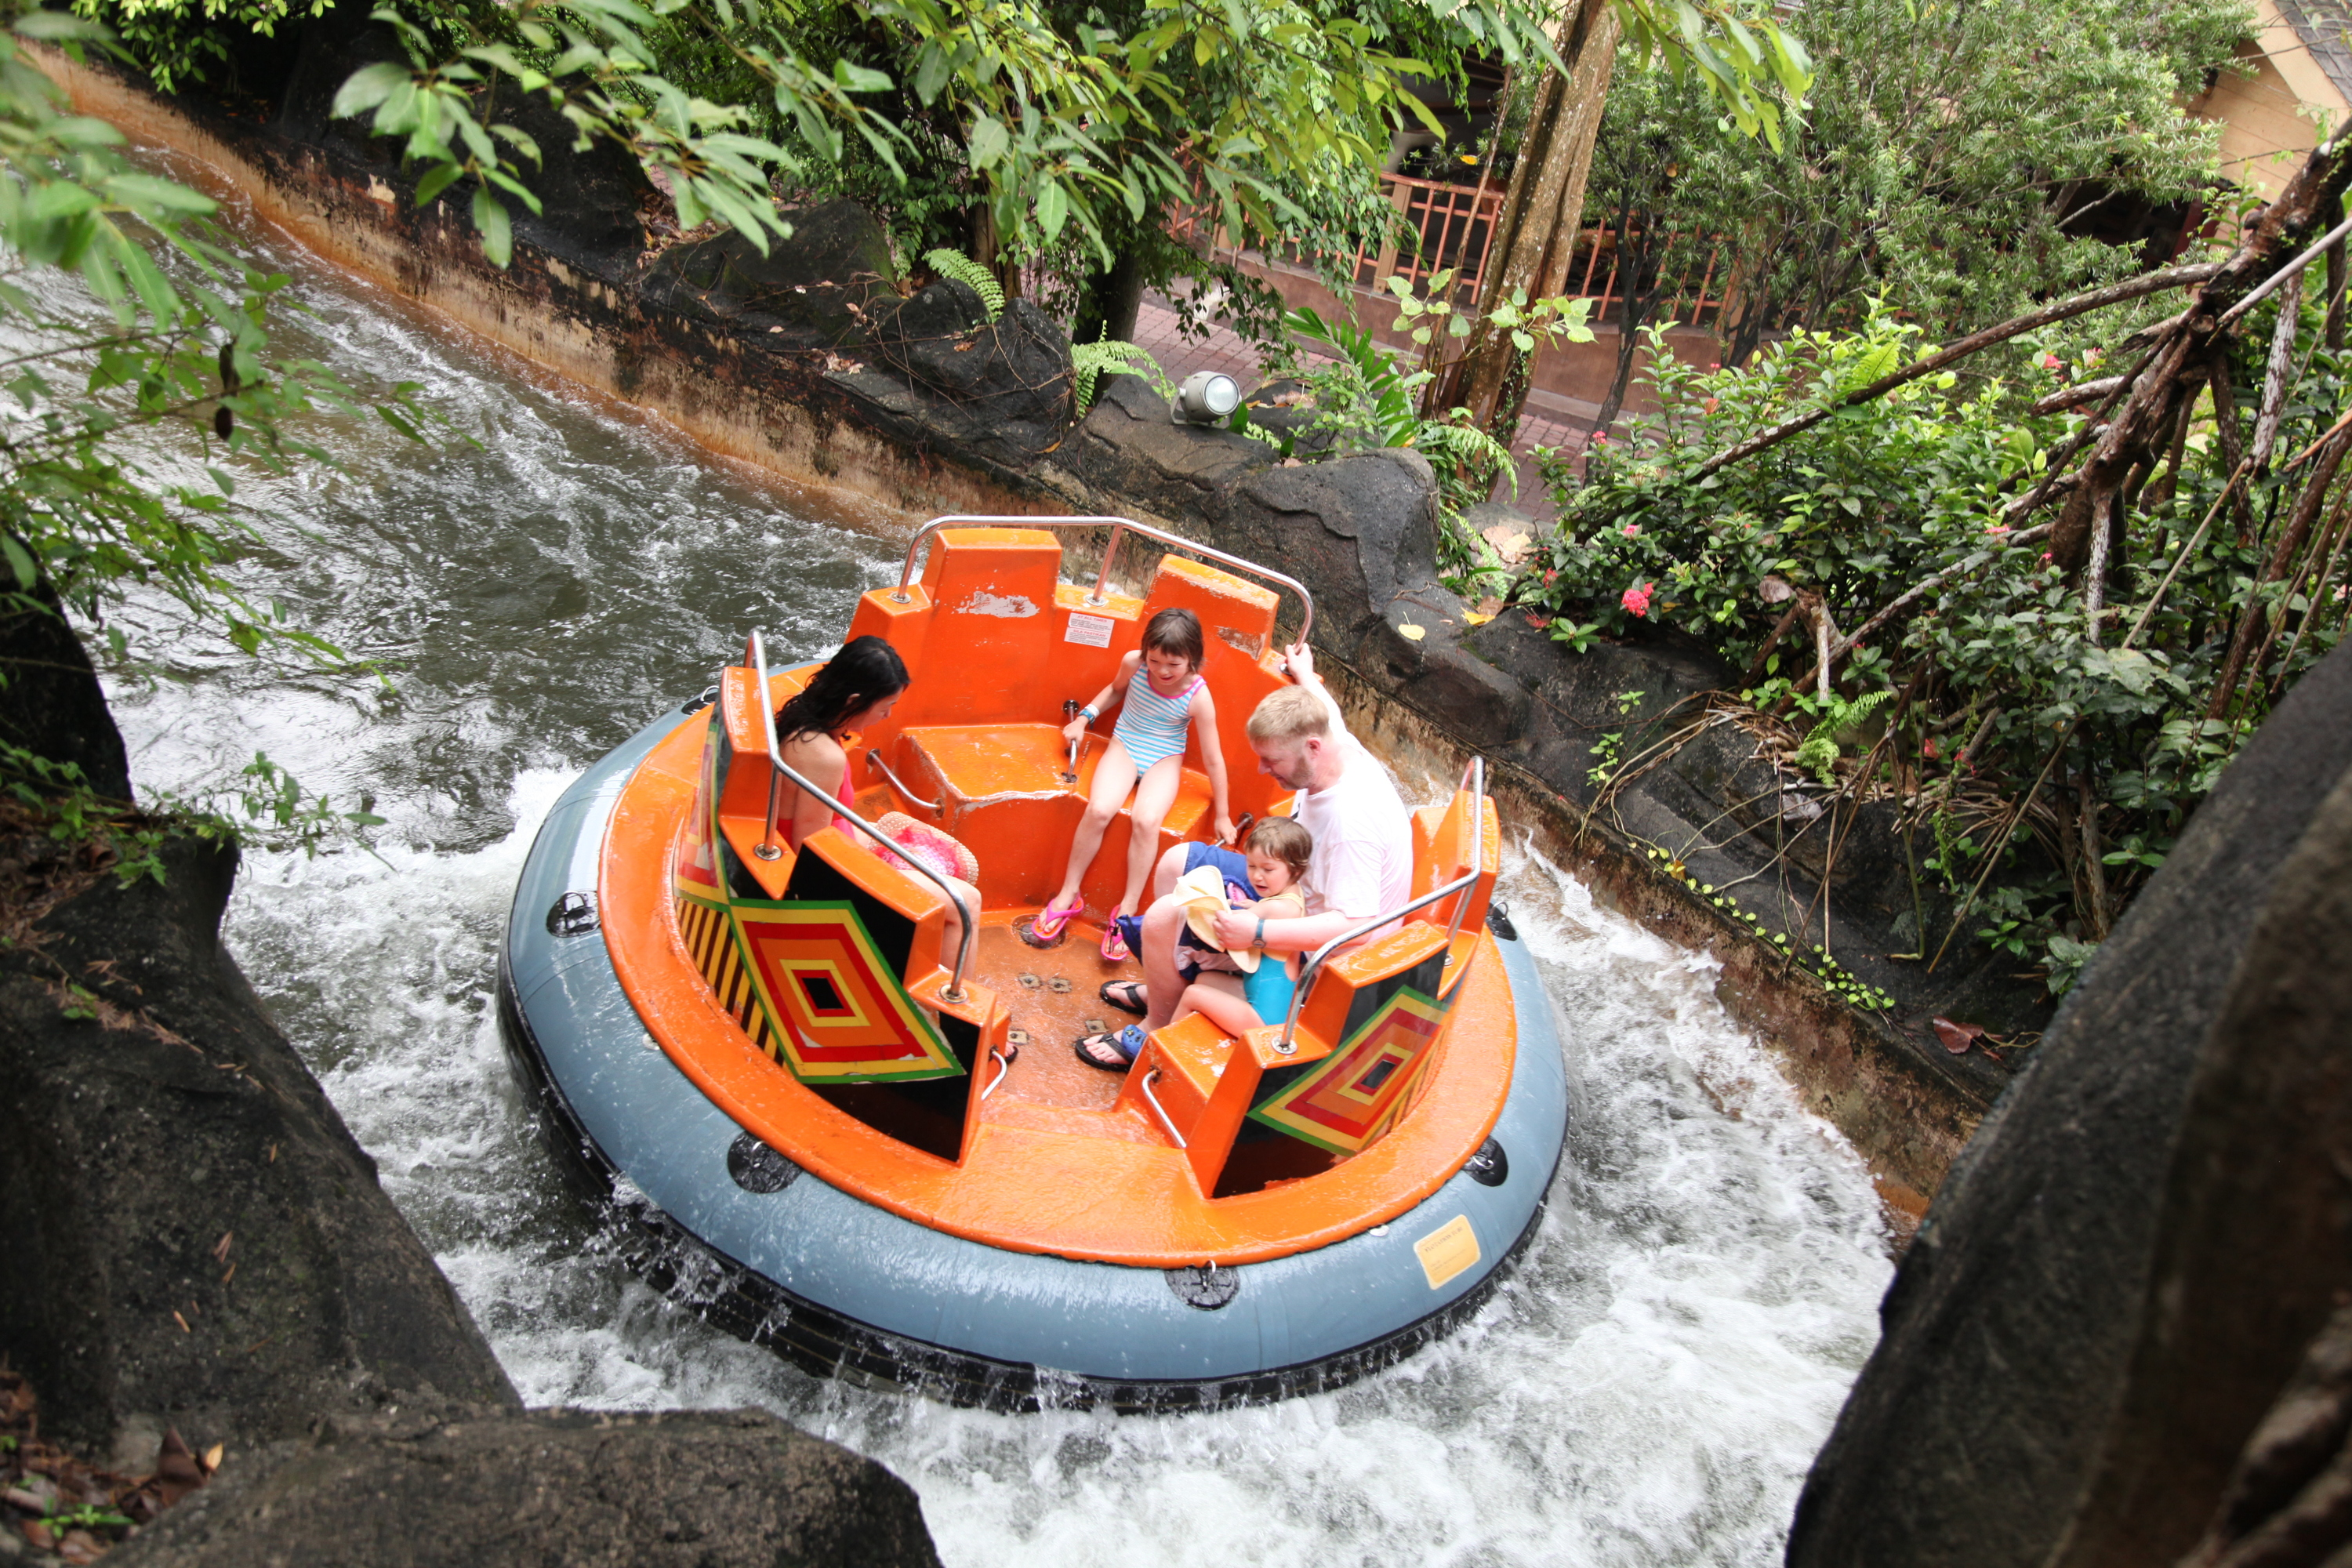 how to go sunway lagoon from kl